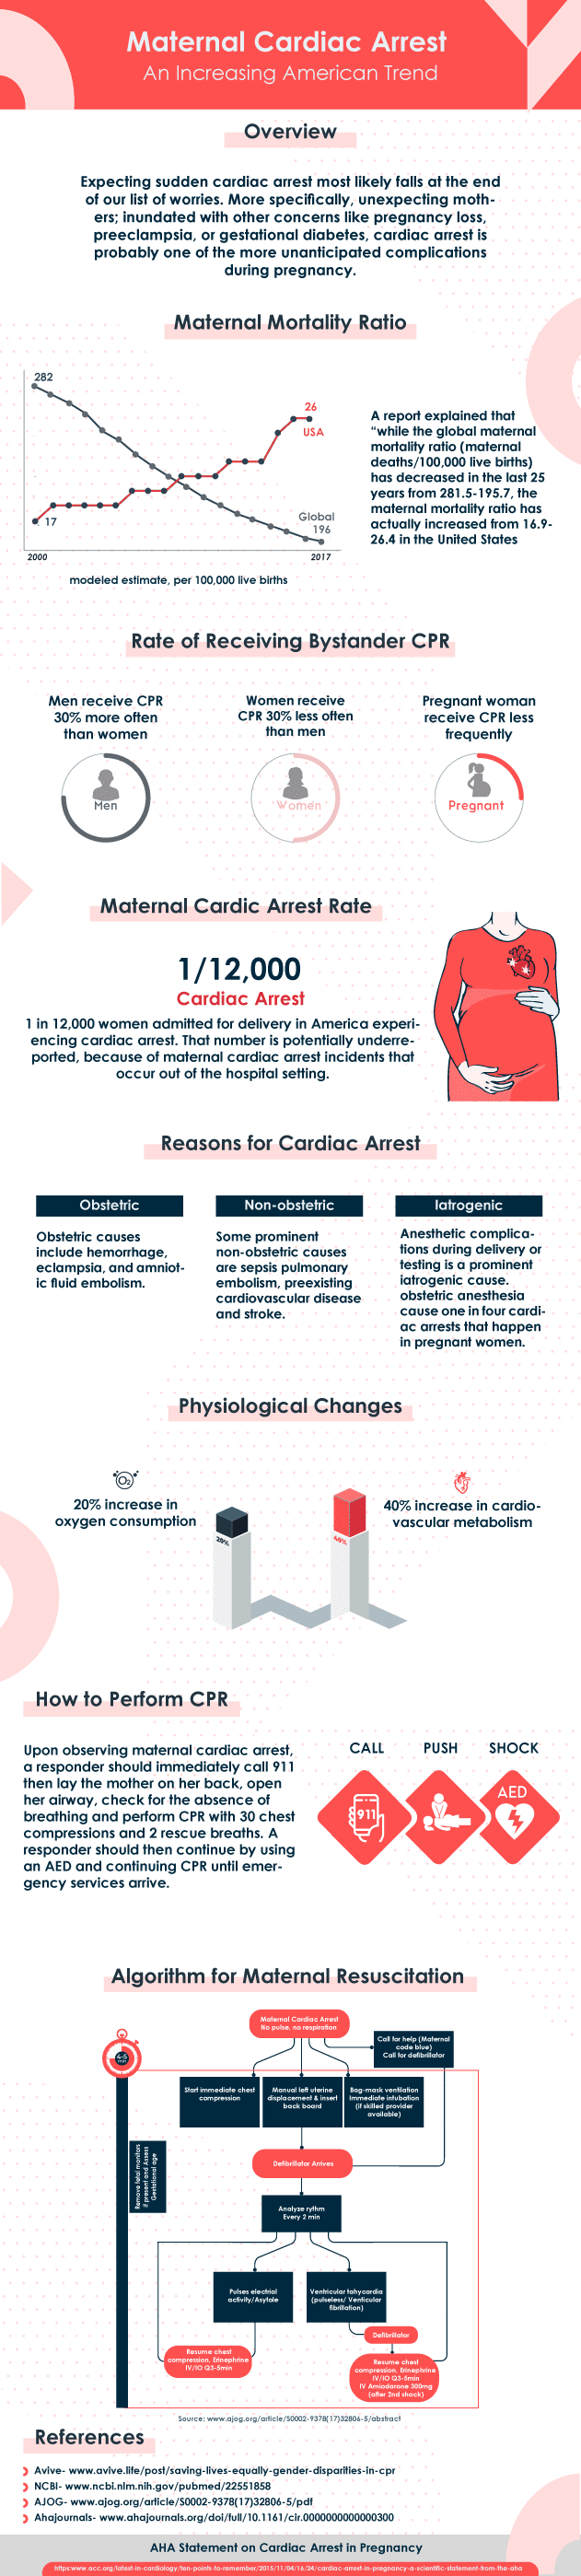 Maternal Cardiac Arrest is on the Rise #Infographic